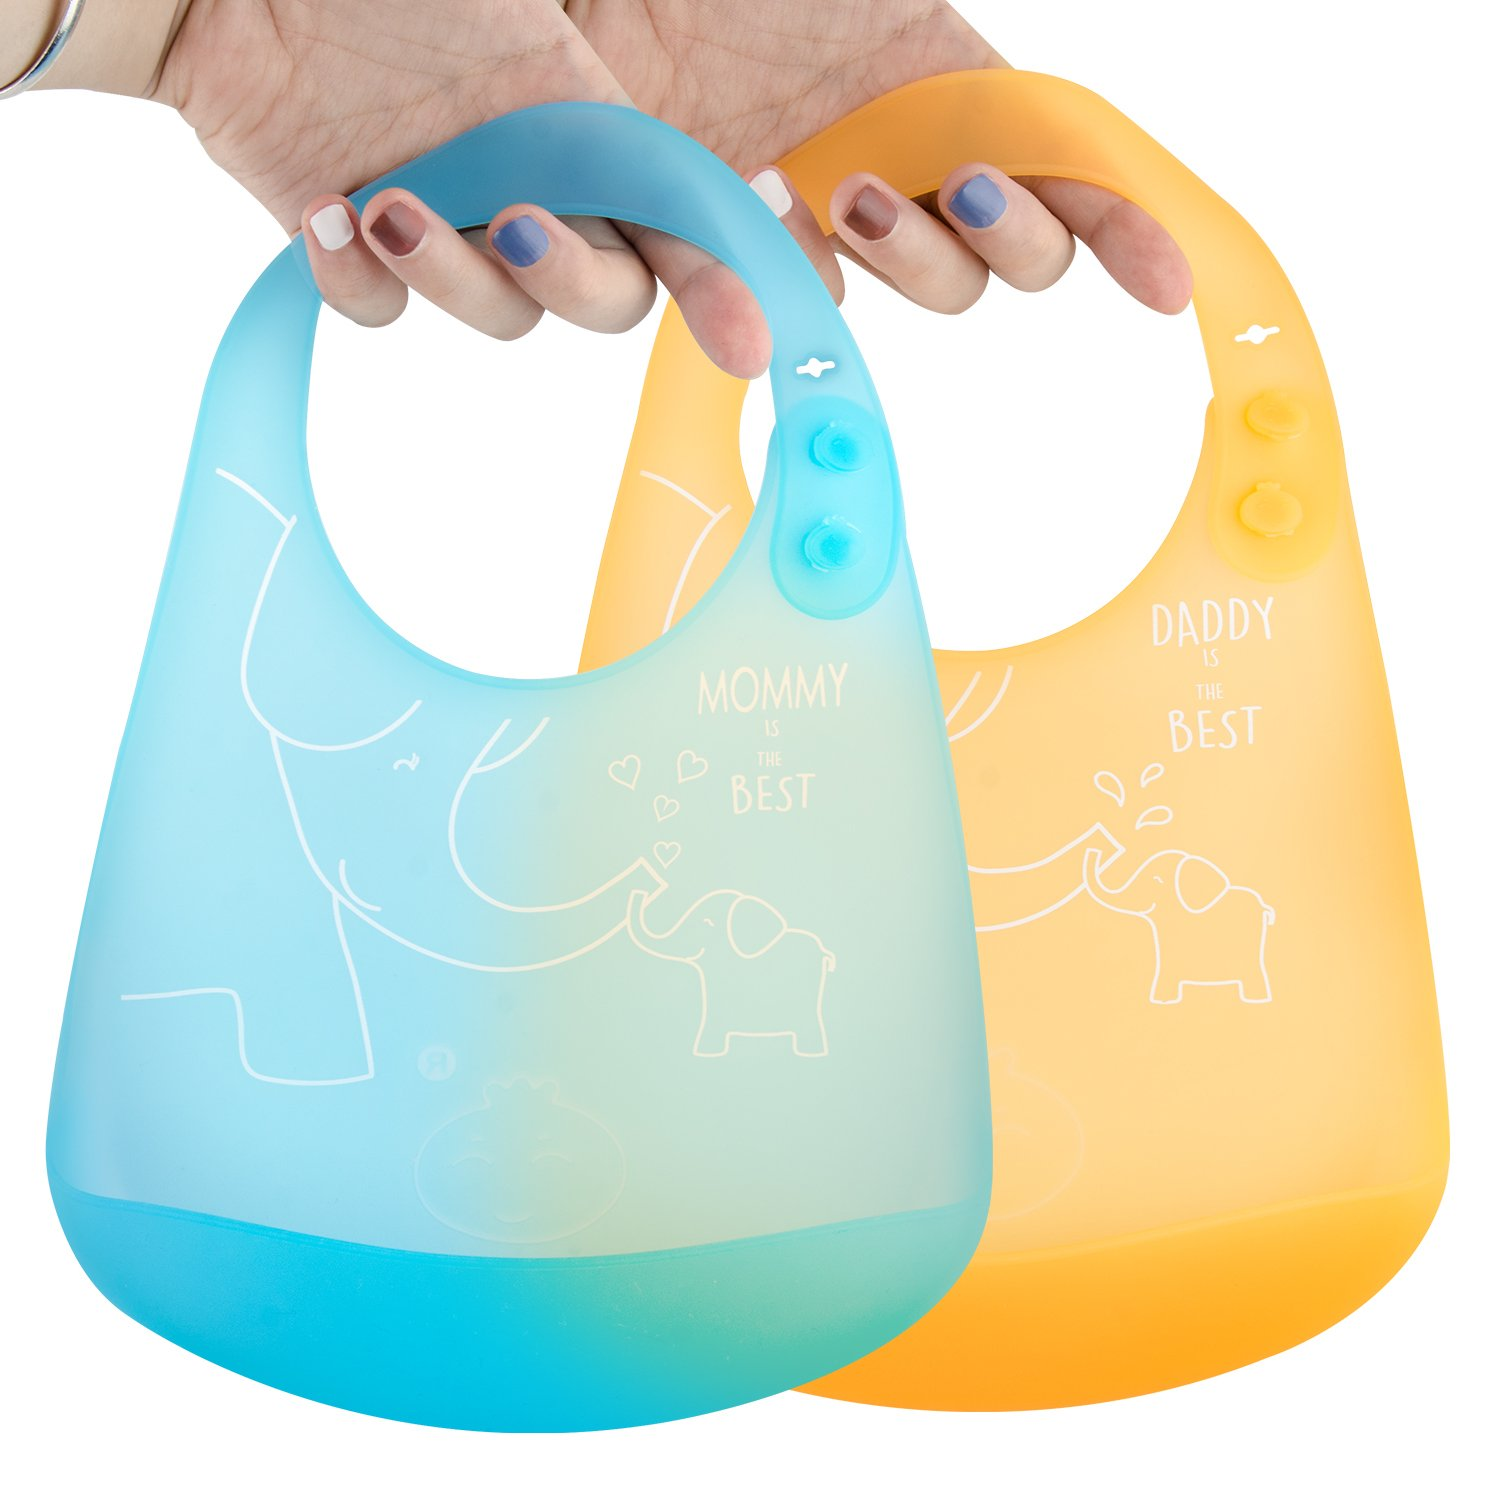 Silicone Baby Bib Waterproof & Soft - UB Extraordinary light(86g),Easily Wipes Clean,Comfortable Soft Baby Bibs Keep Stains Off,Save Time Cleaning after Meals with Babies or Toddlers! Set of 2 Colors